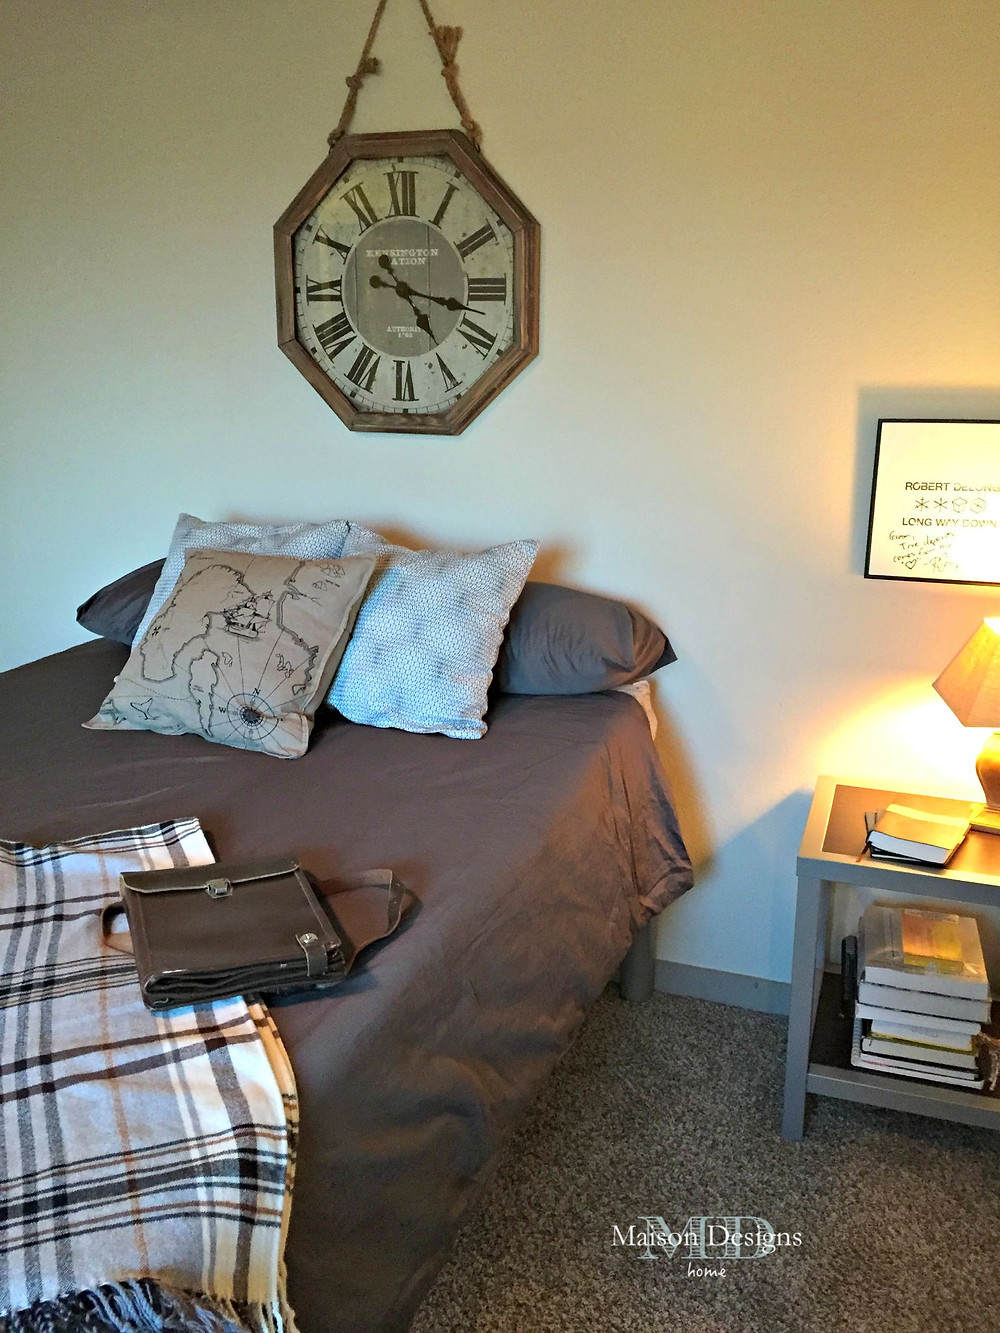 College Room Decorating Tips-Maison Designs Home